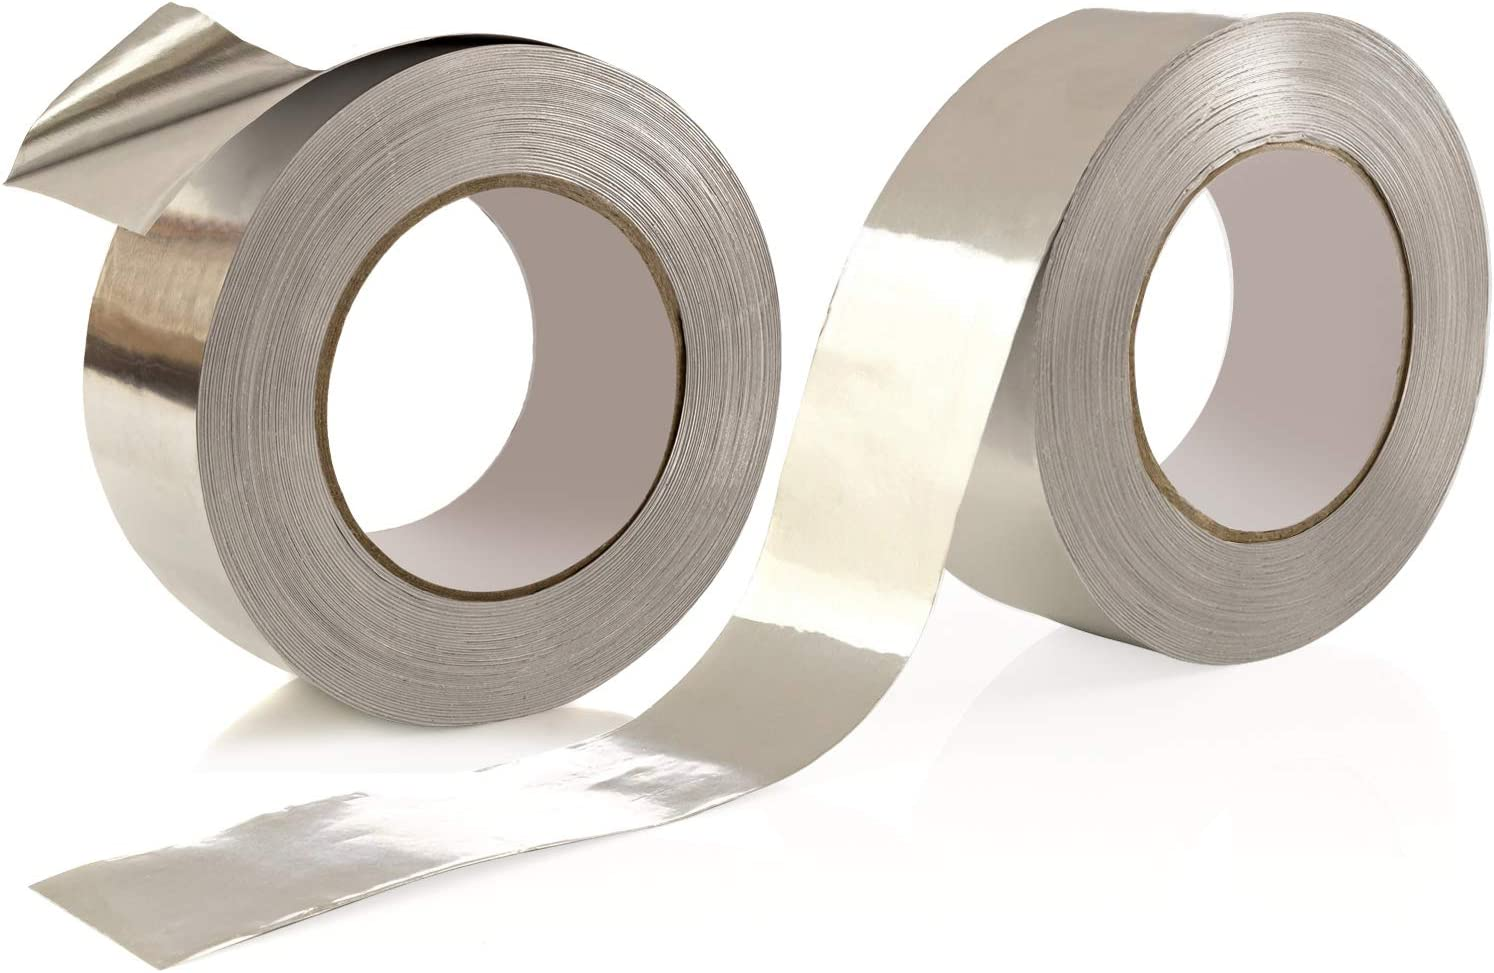 2-Pack Aluminum Tape/Foil Tape - Professional/Contractor-Grade - 1.9 inch x 150 feet (3.4 mil) - Perfect for HVAC, Duct, Pipe, Insulation and More - by Impresa Products